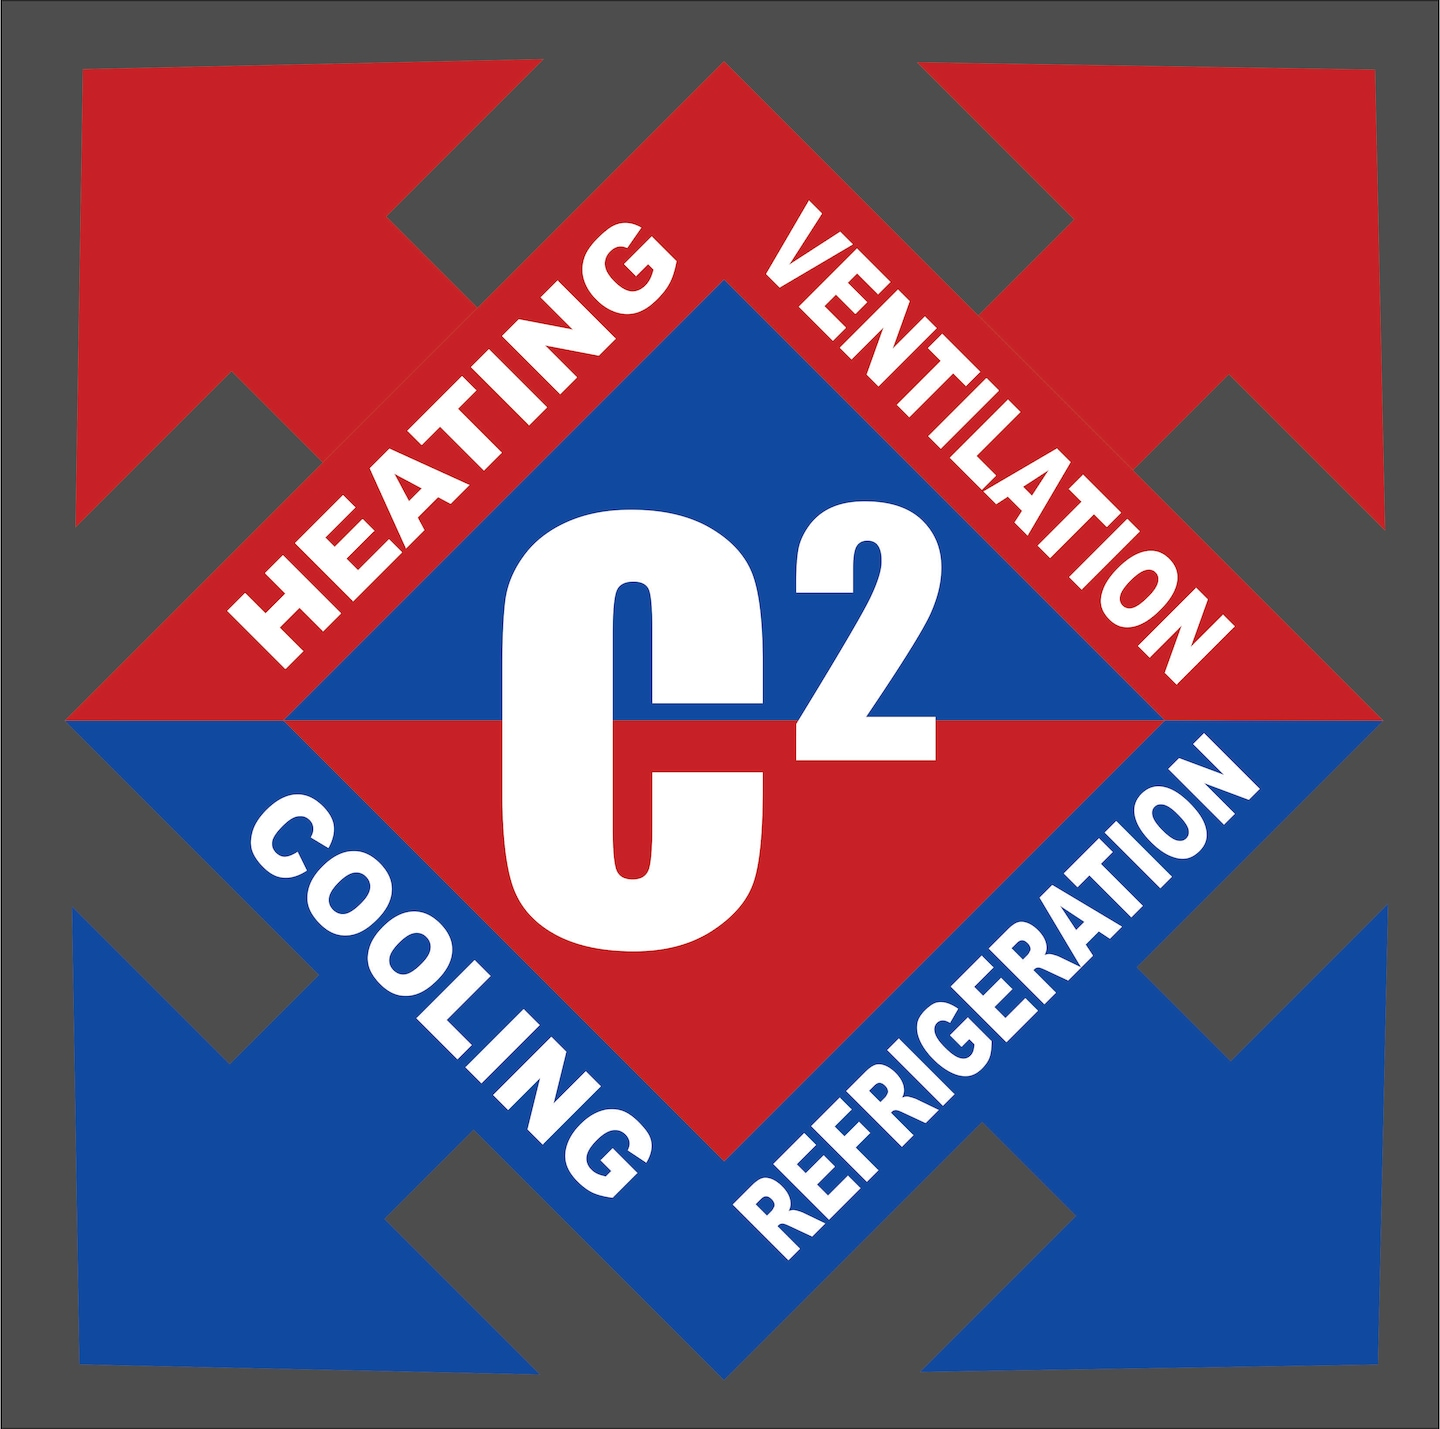 C2 Heating & Cooling LLC